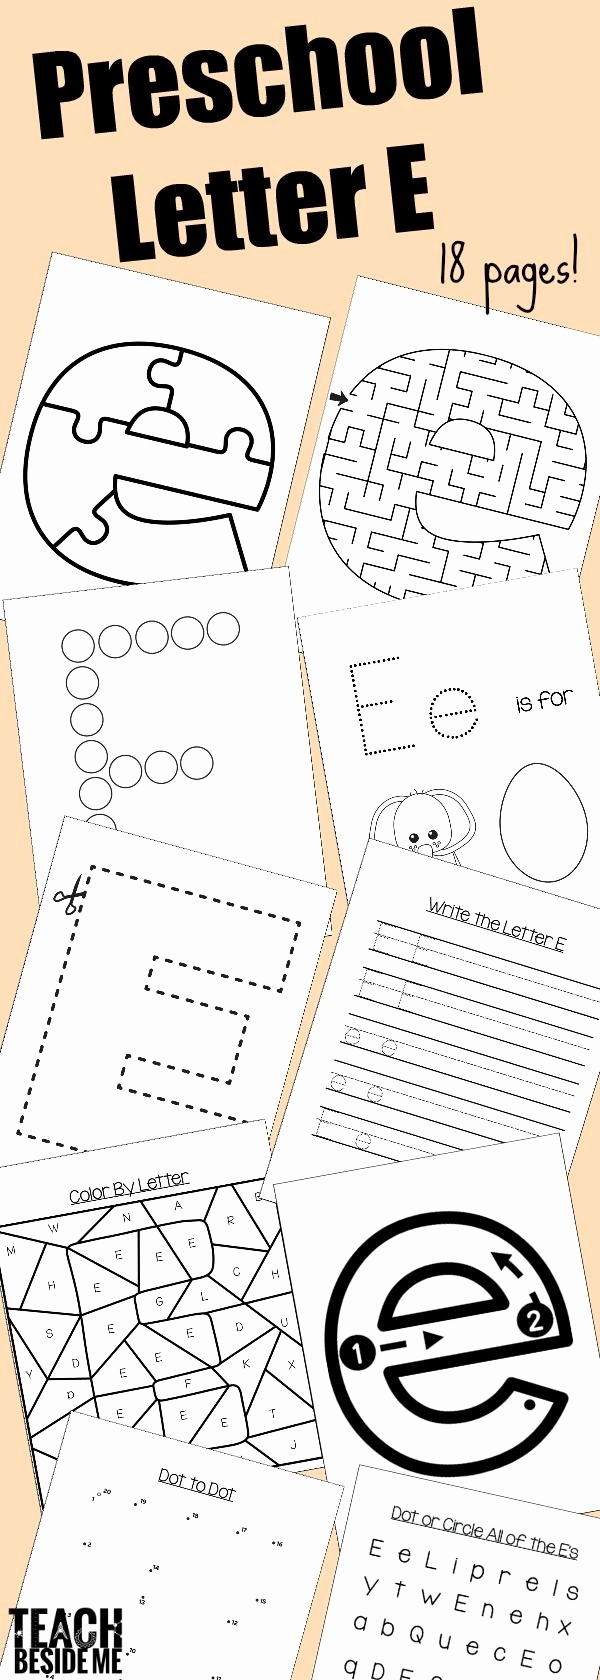 Buchstaben Lernen Fur Vorschulkinder Luxus Preschool Letter E Activities Letter Of the Week